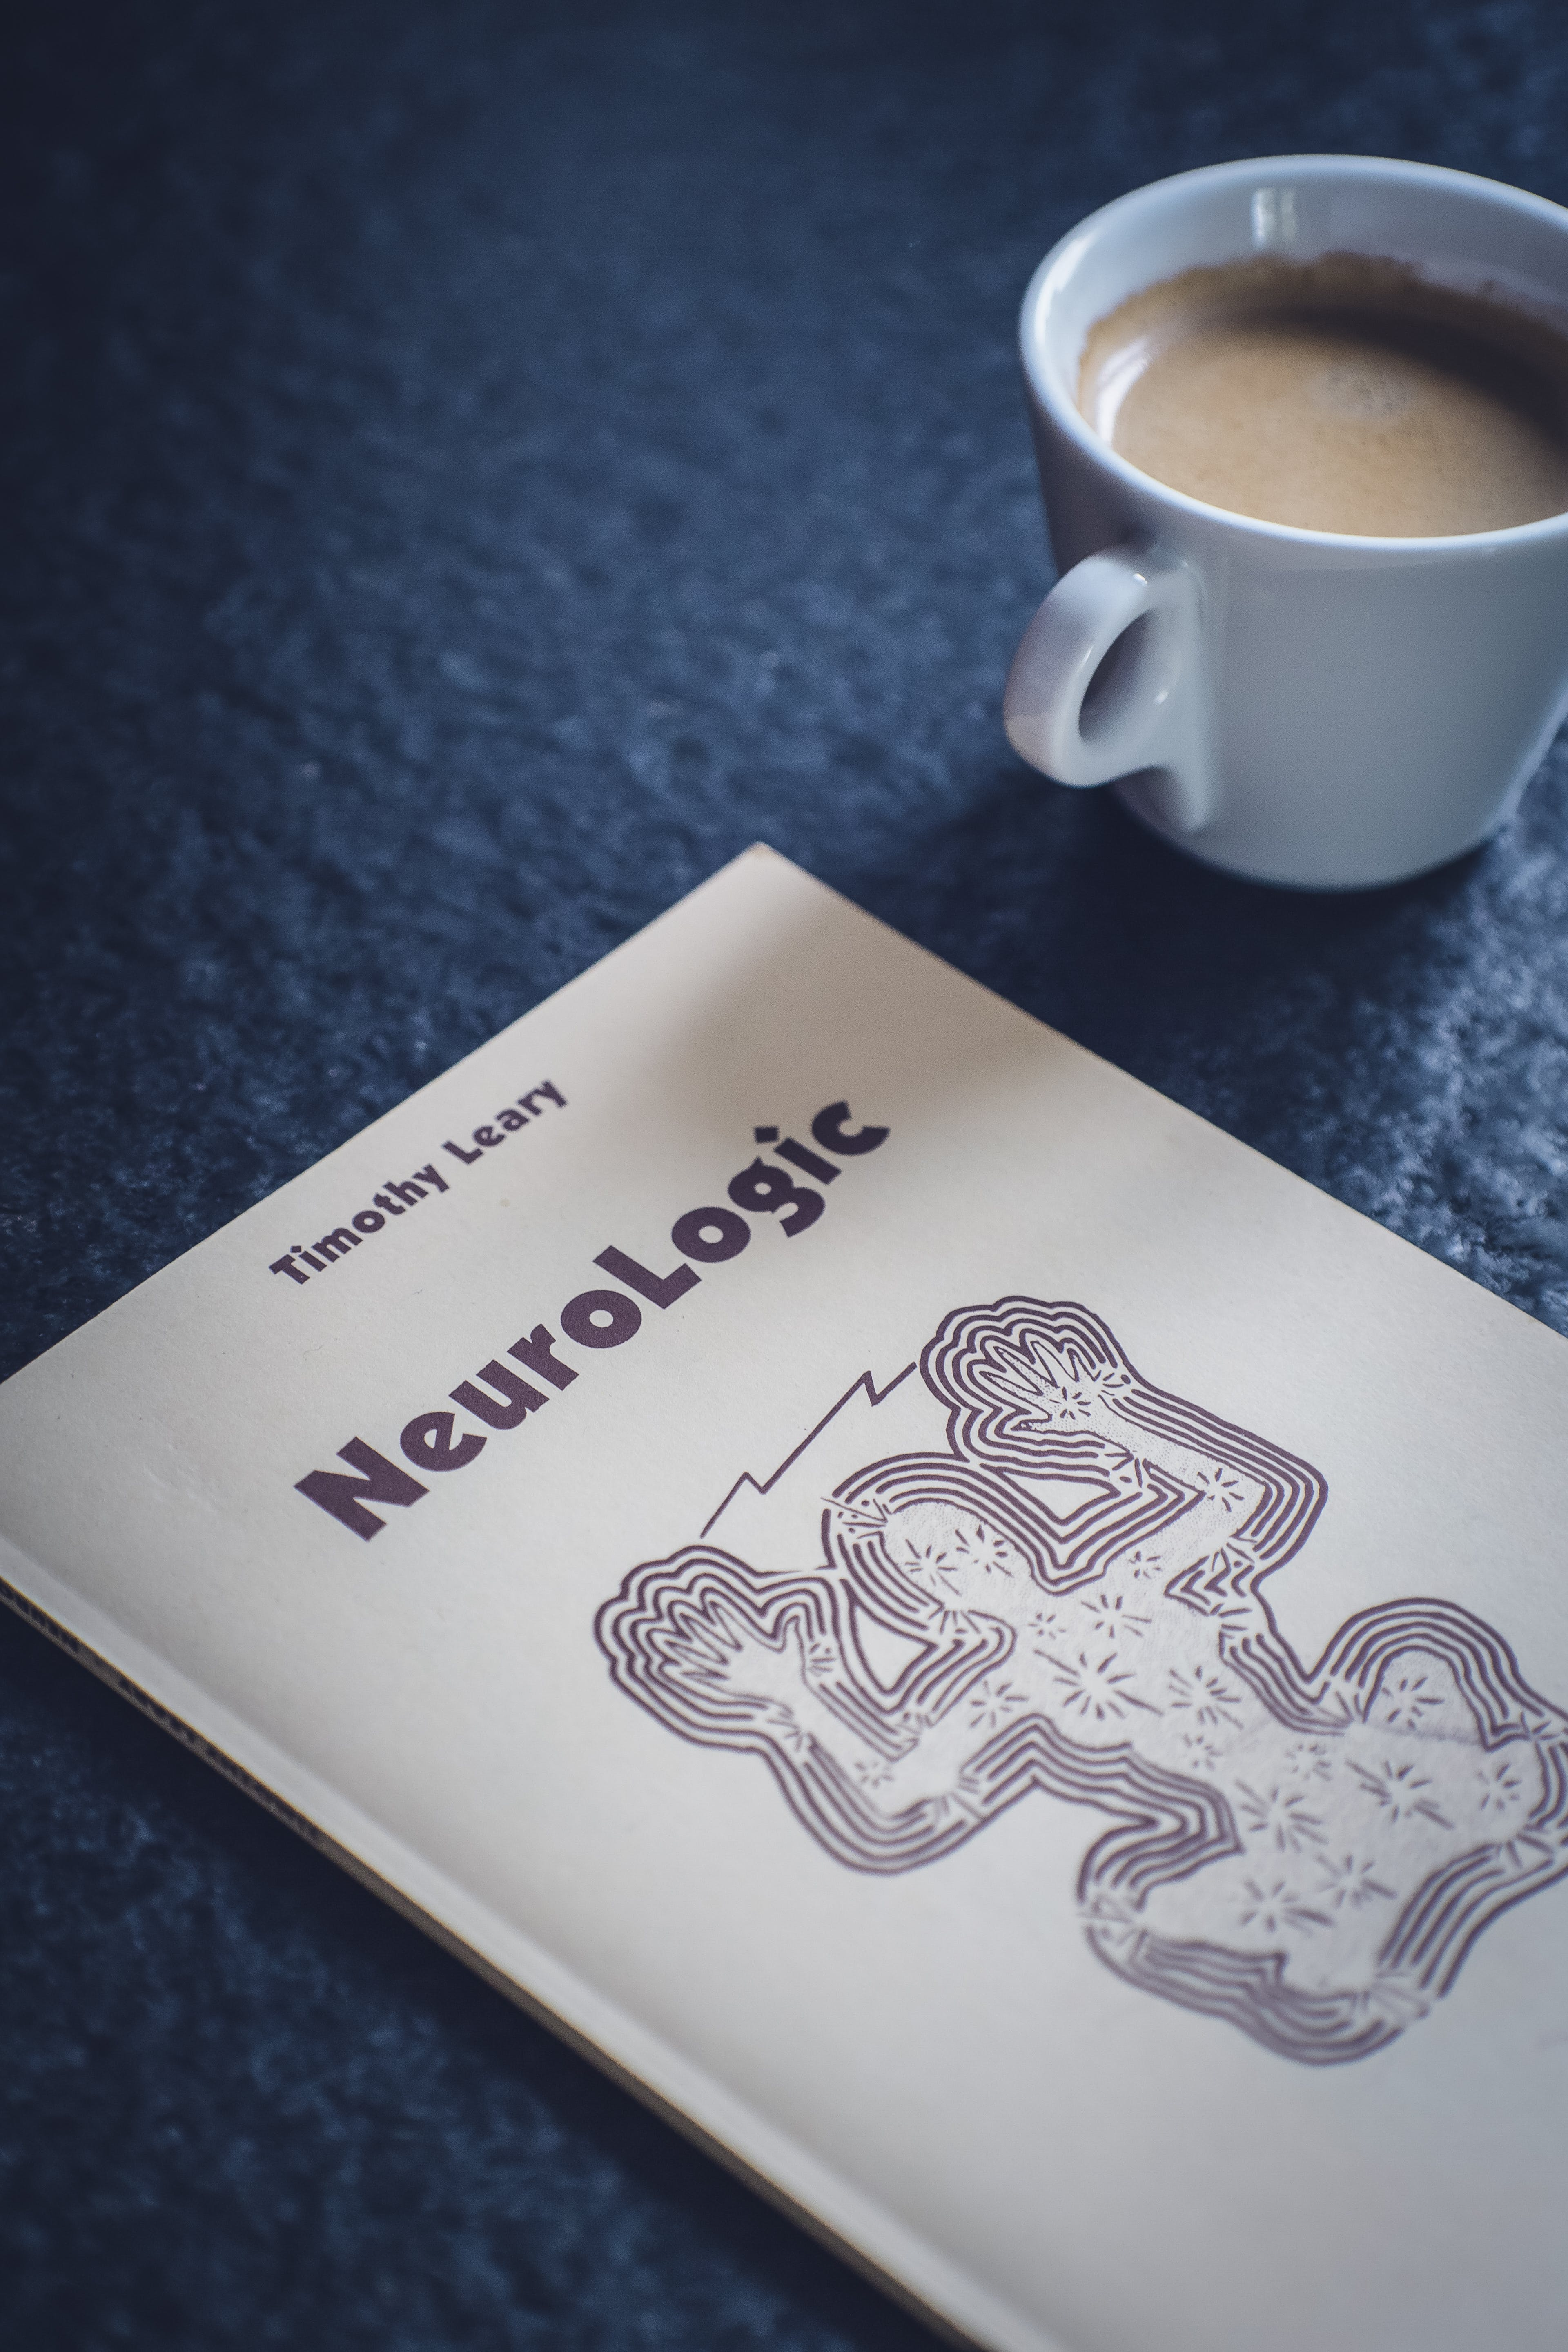 Timothy Leary's Neurologic Book Near White Ceramic Cup